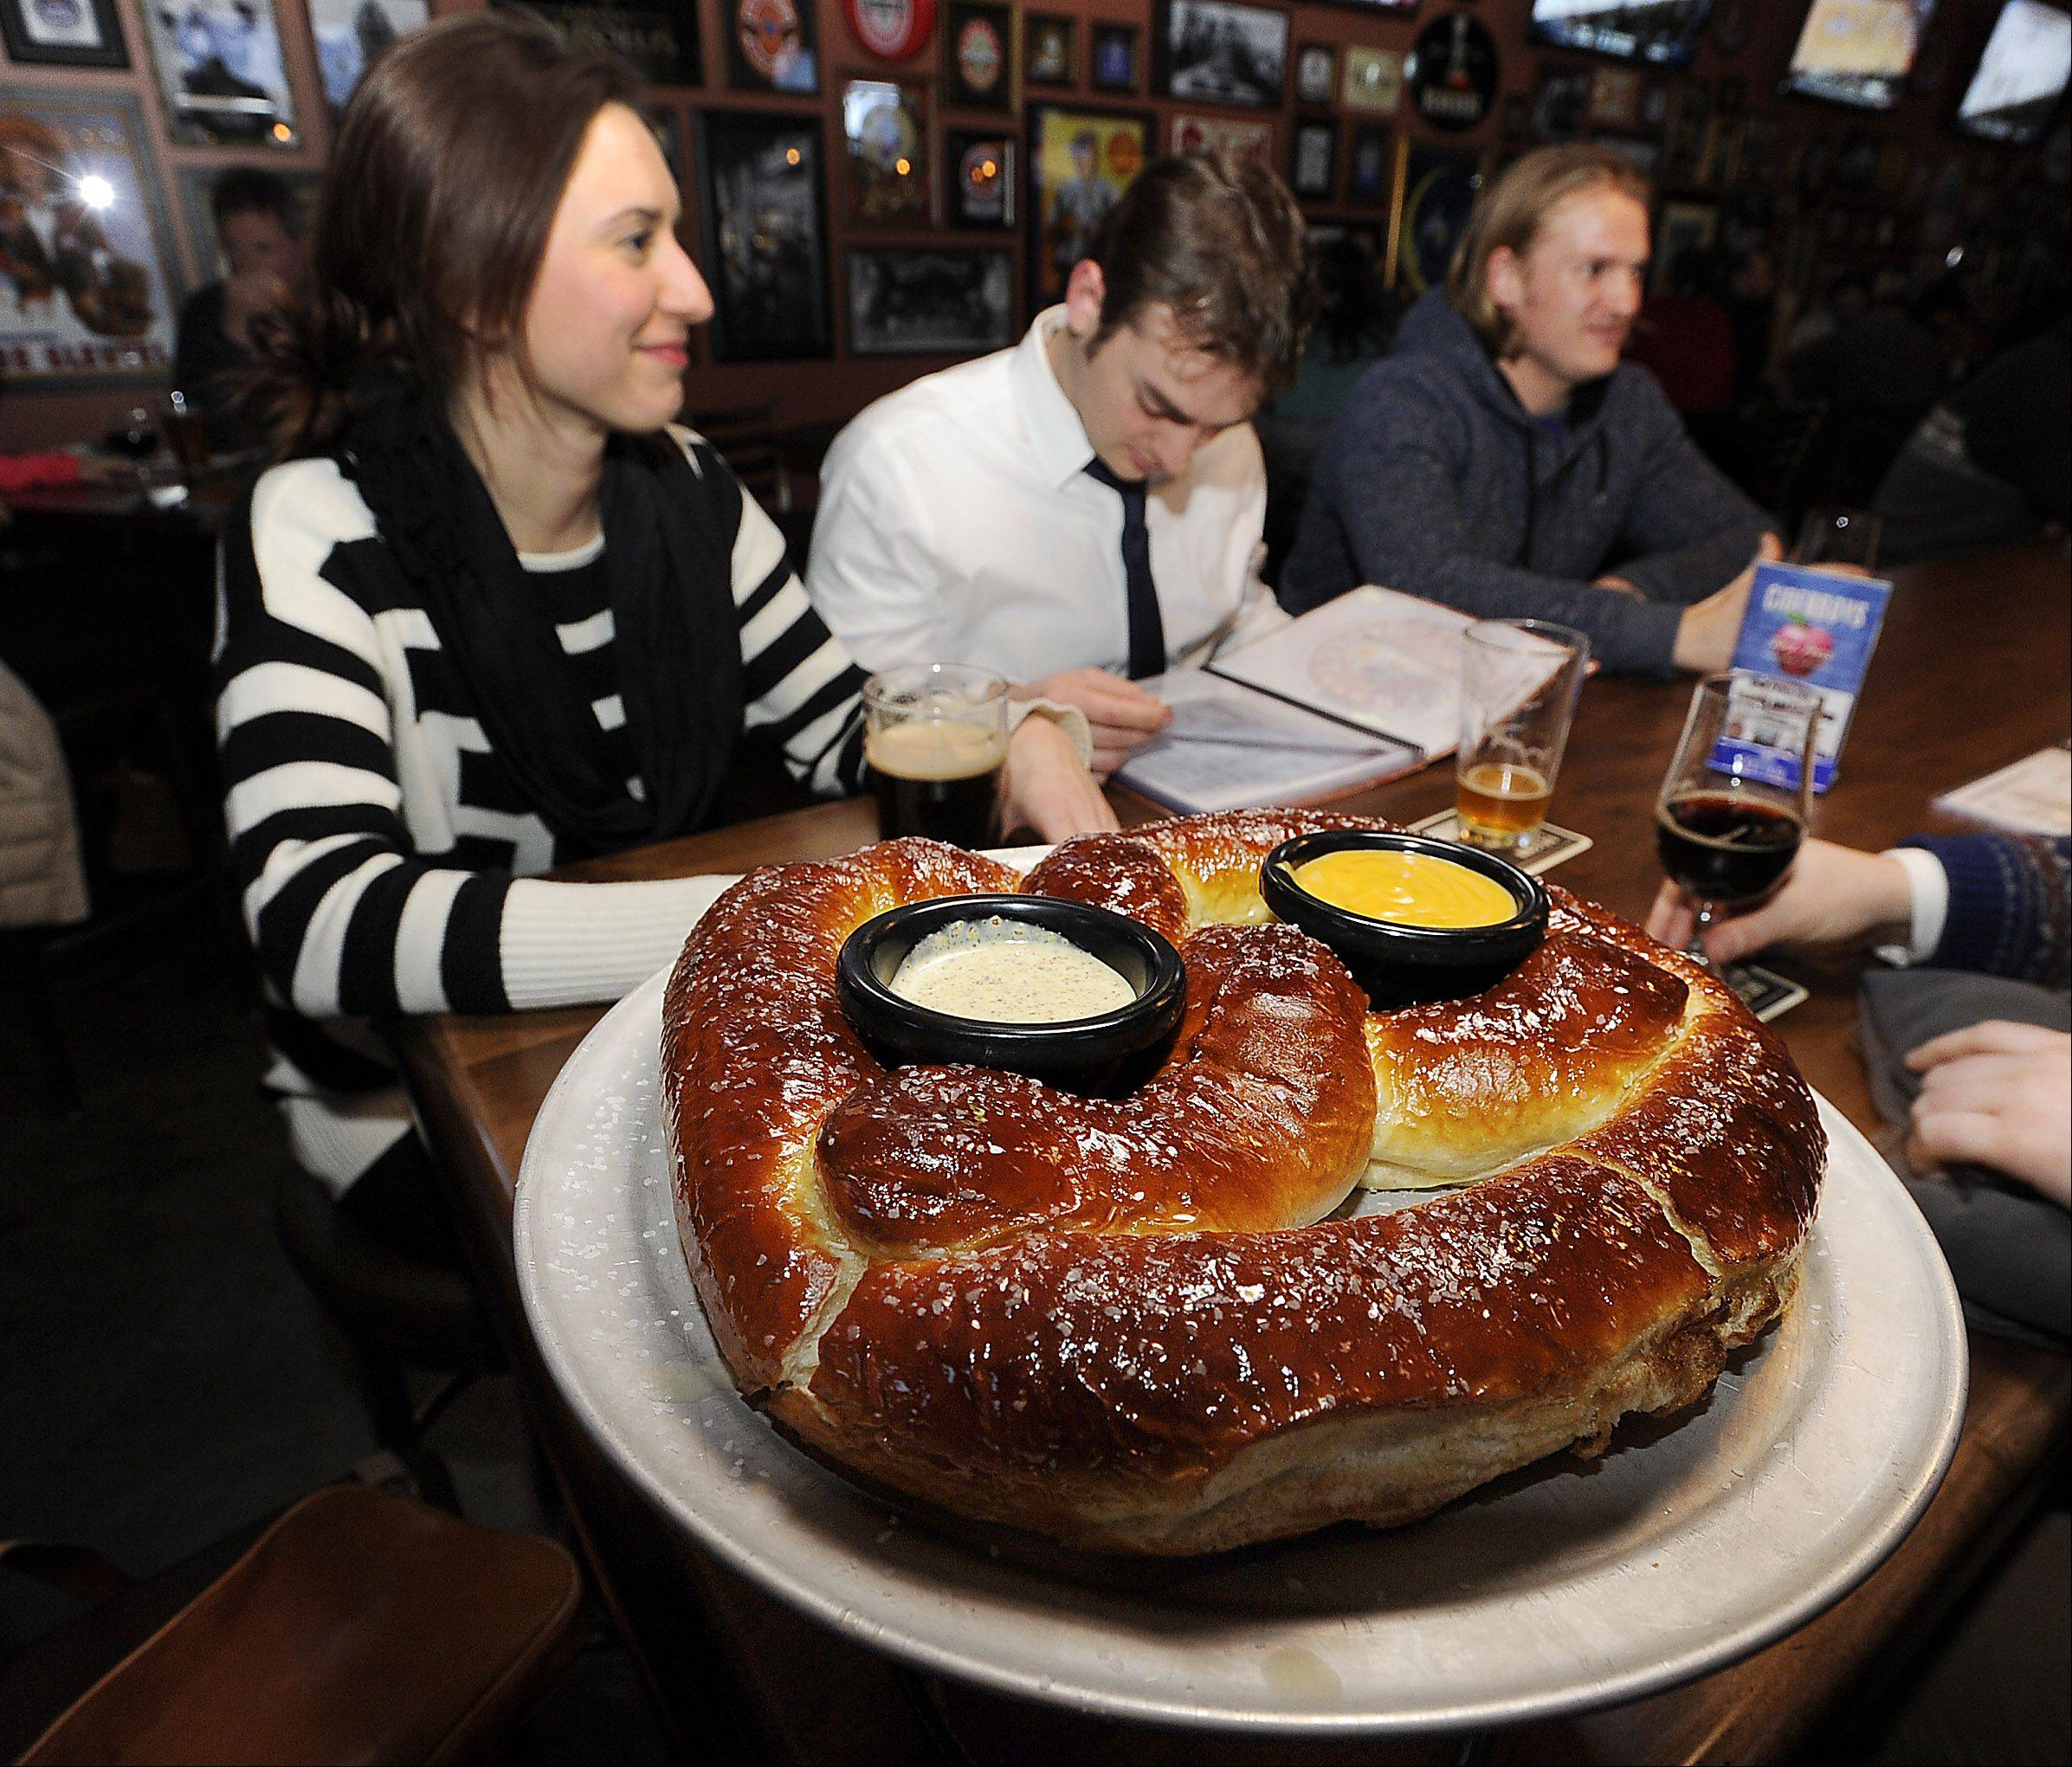 A giant pretzel, served with dipping sauces, is meant to be shared at The Beer Market in Schaumburg.